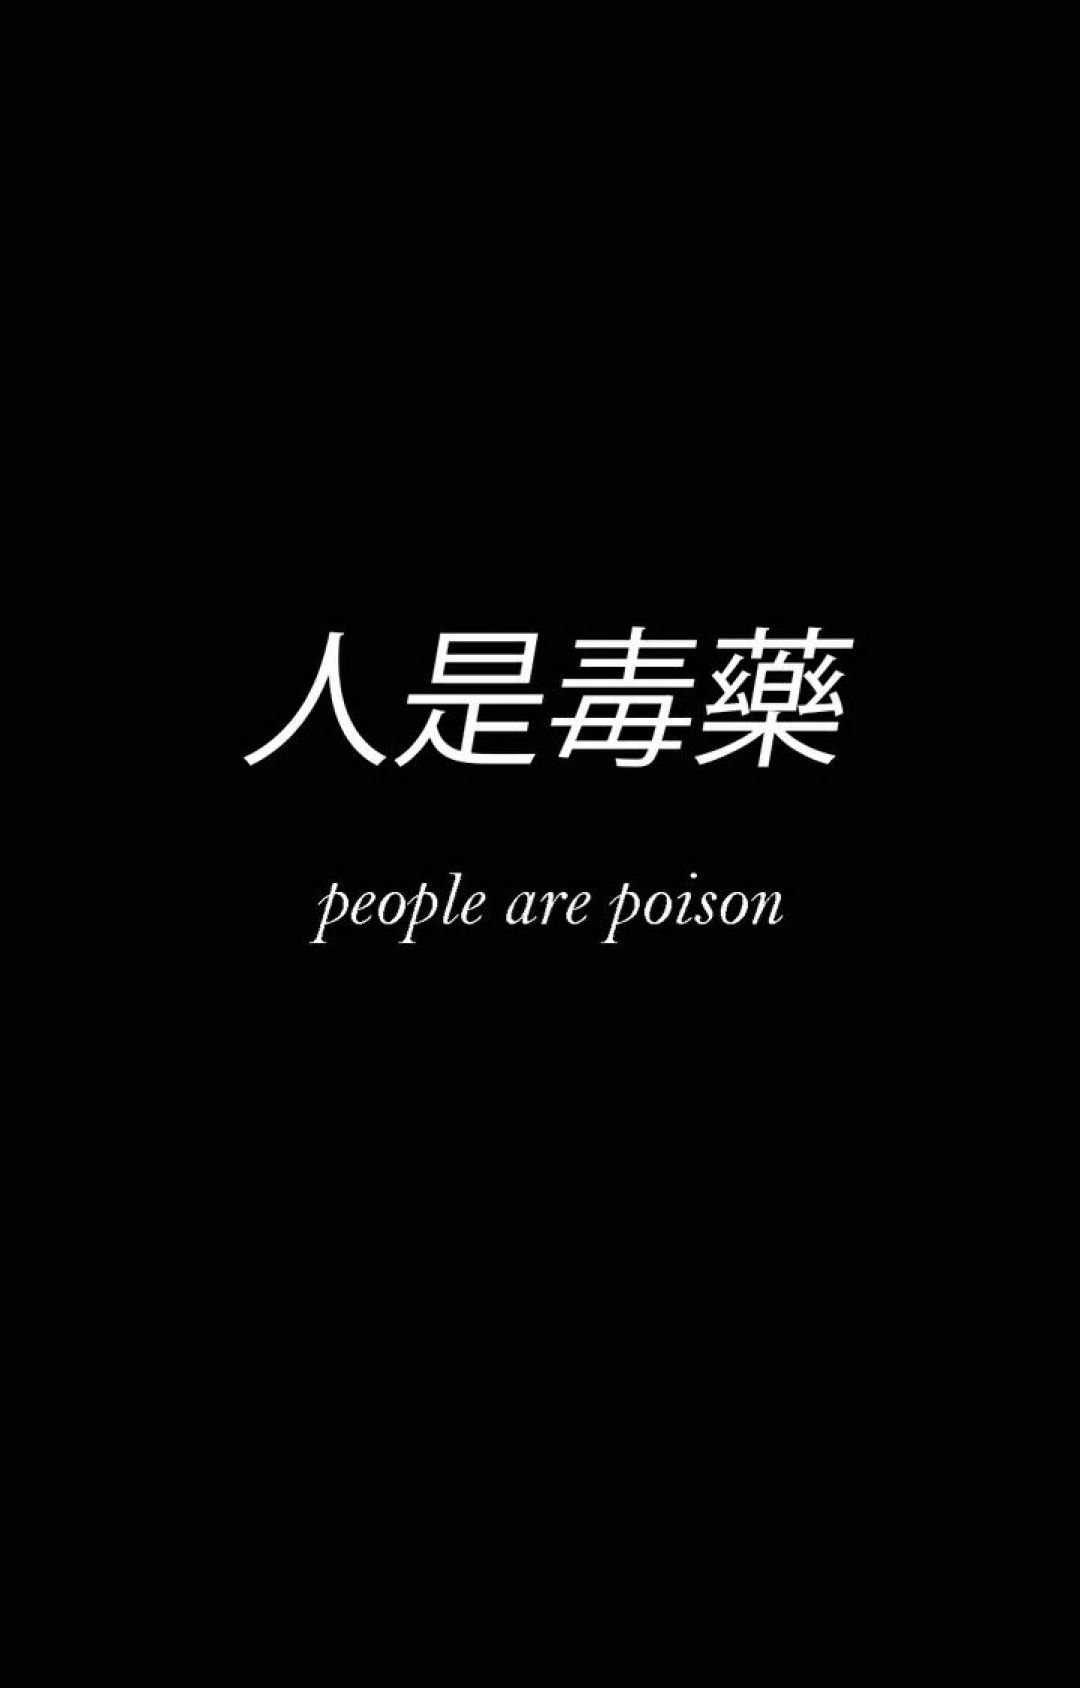 japanese aesthetic quotesandroid iphone desktop hd backgrounds wallpapers 1080p 4k kedpg